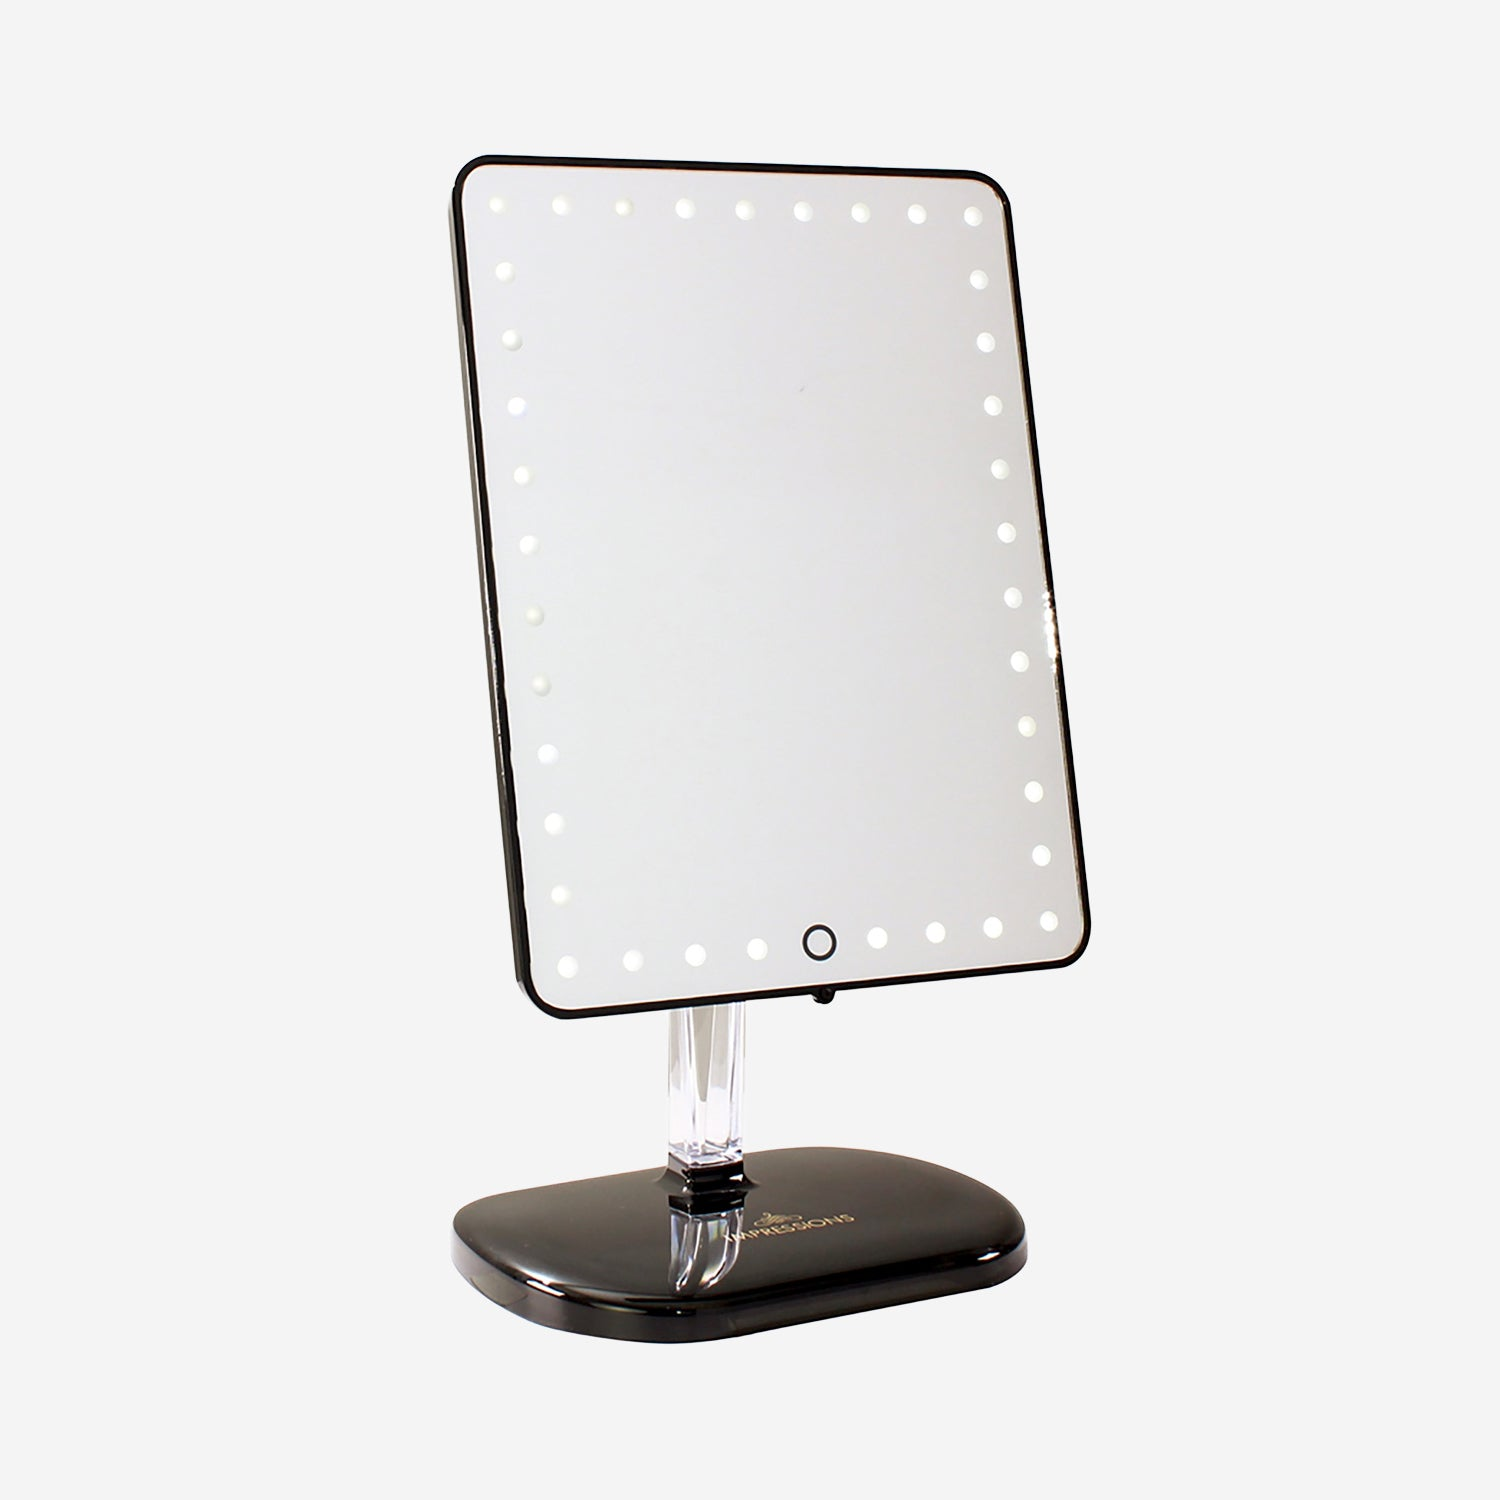 vanity mirror with audio and speakerphone - black | decor